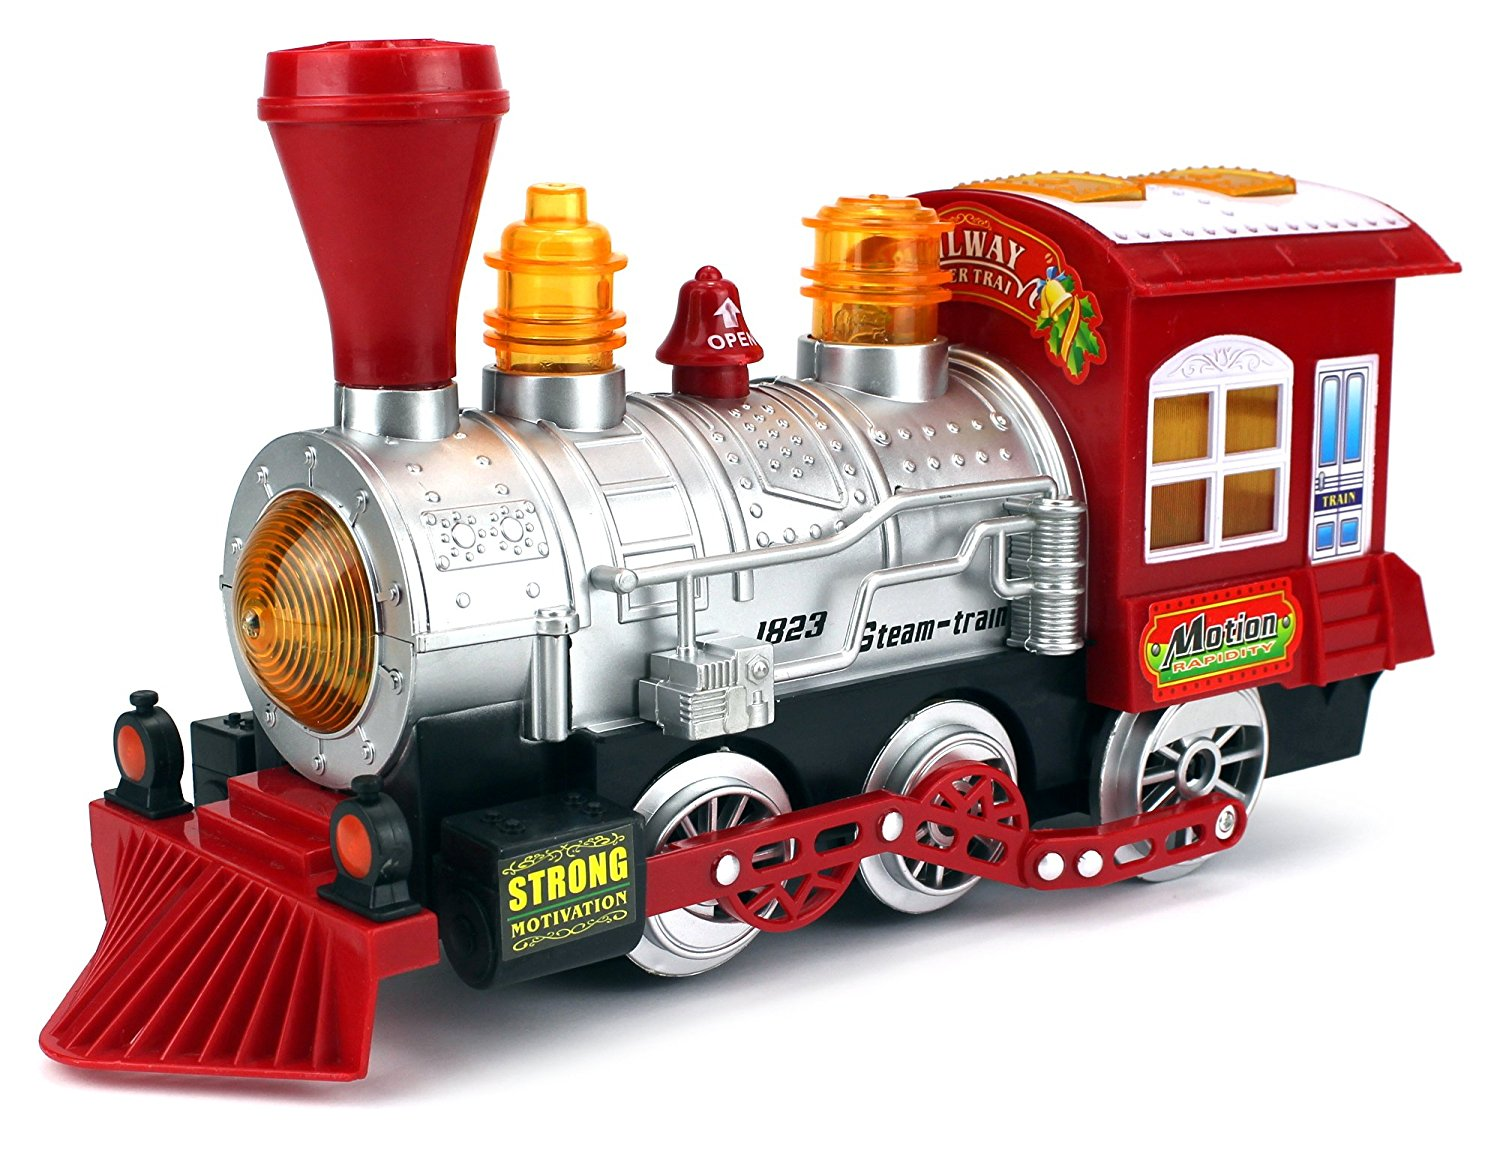 Bubble Steam Train Locomotive Engine Car Bubble Blowing Bump & Go Battery Operated Toy... by Velocity Toys